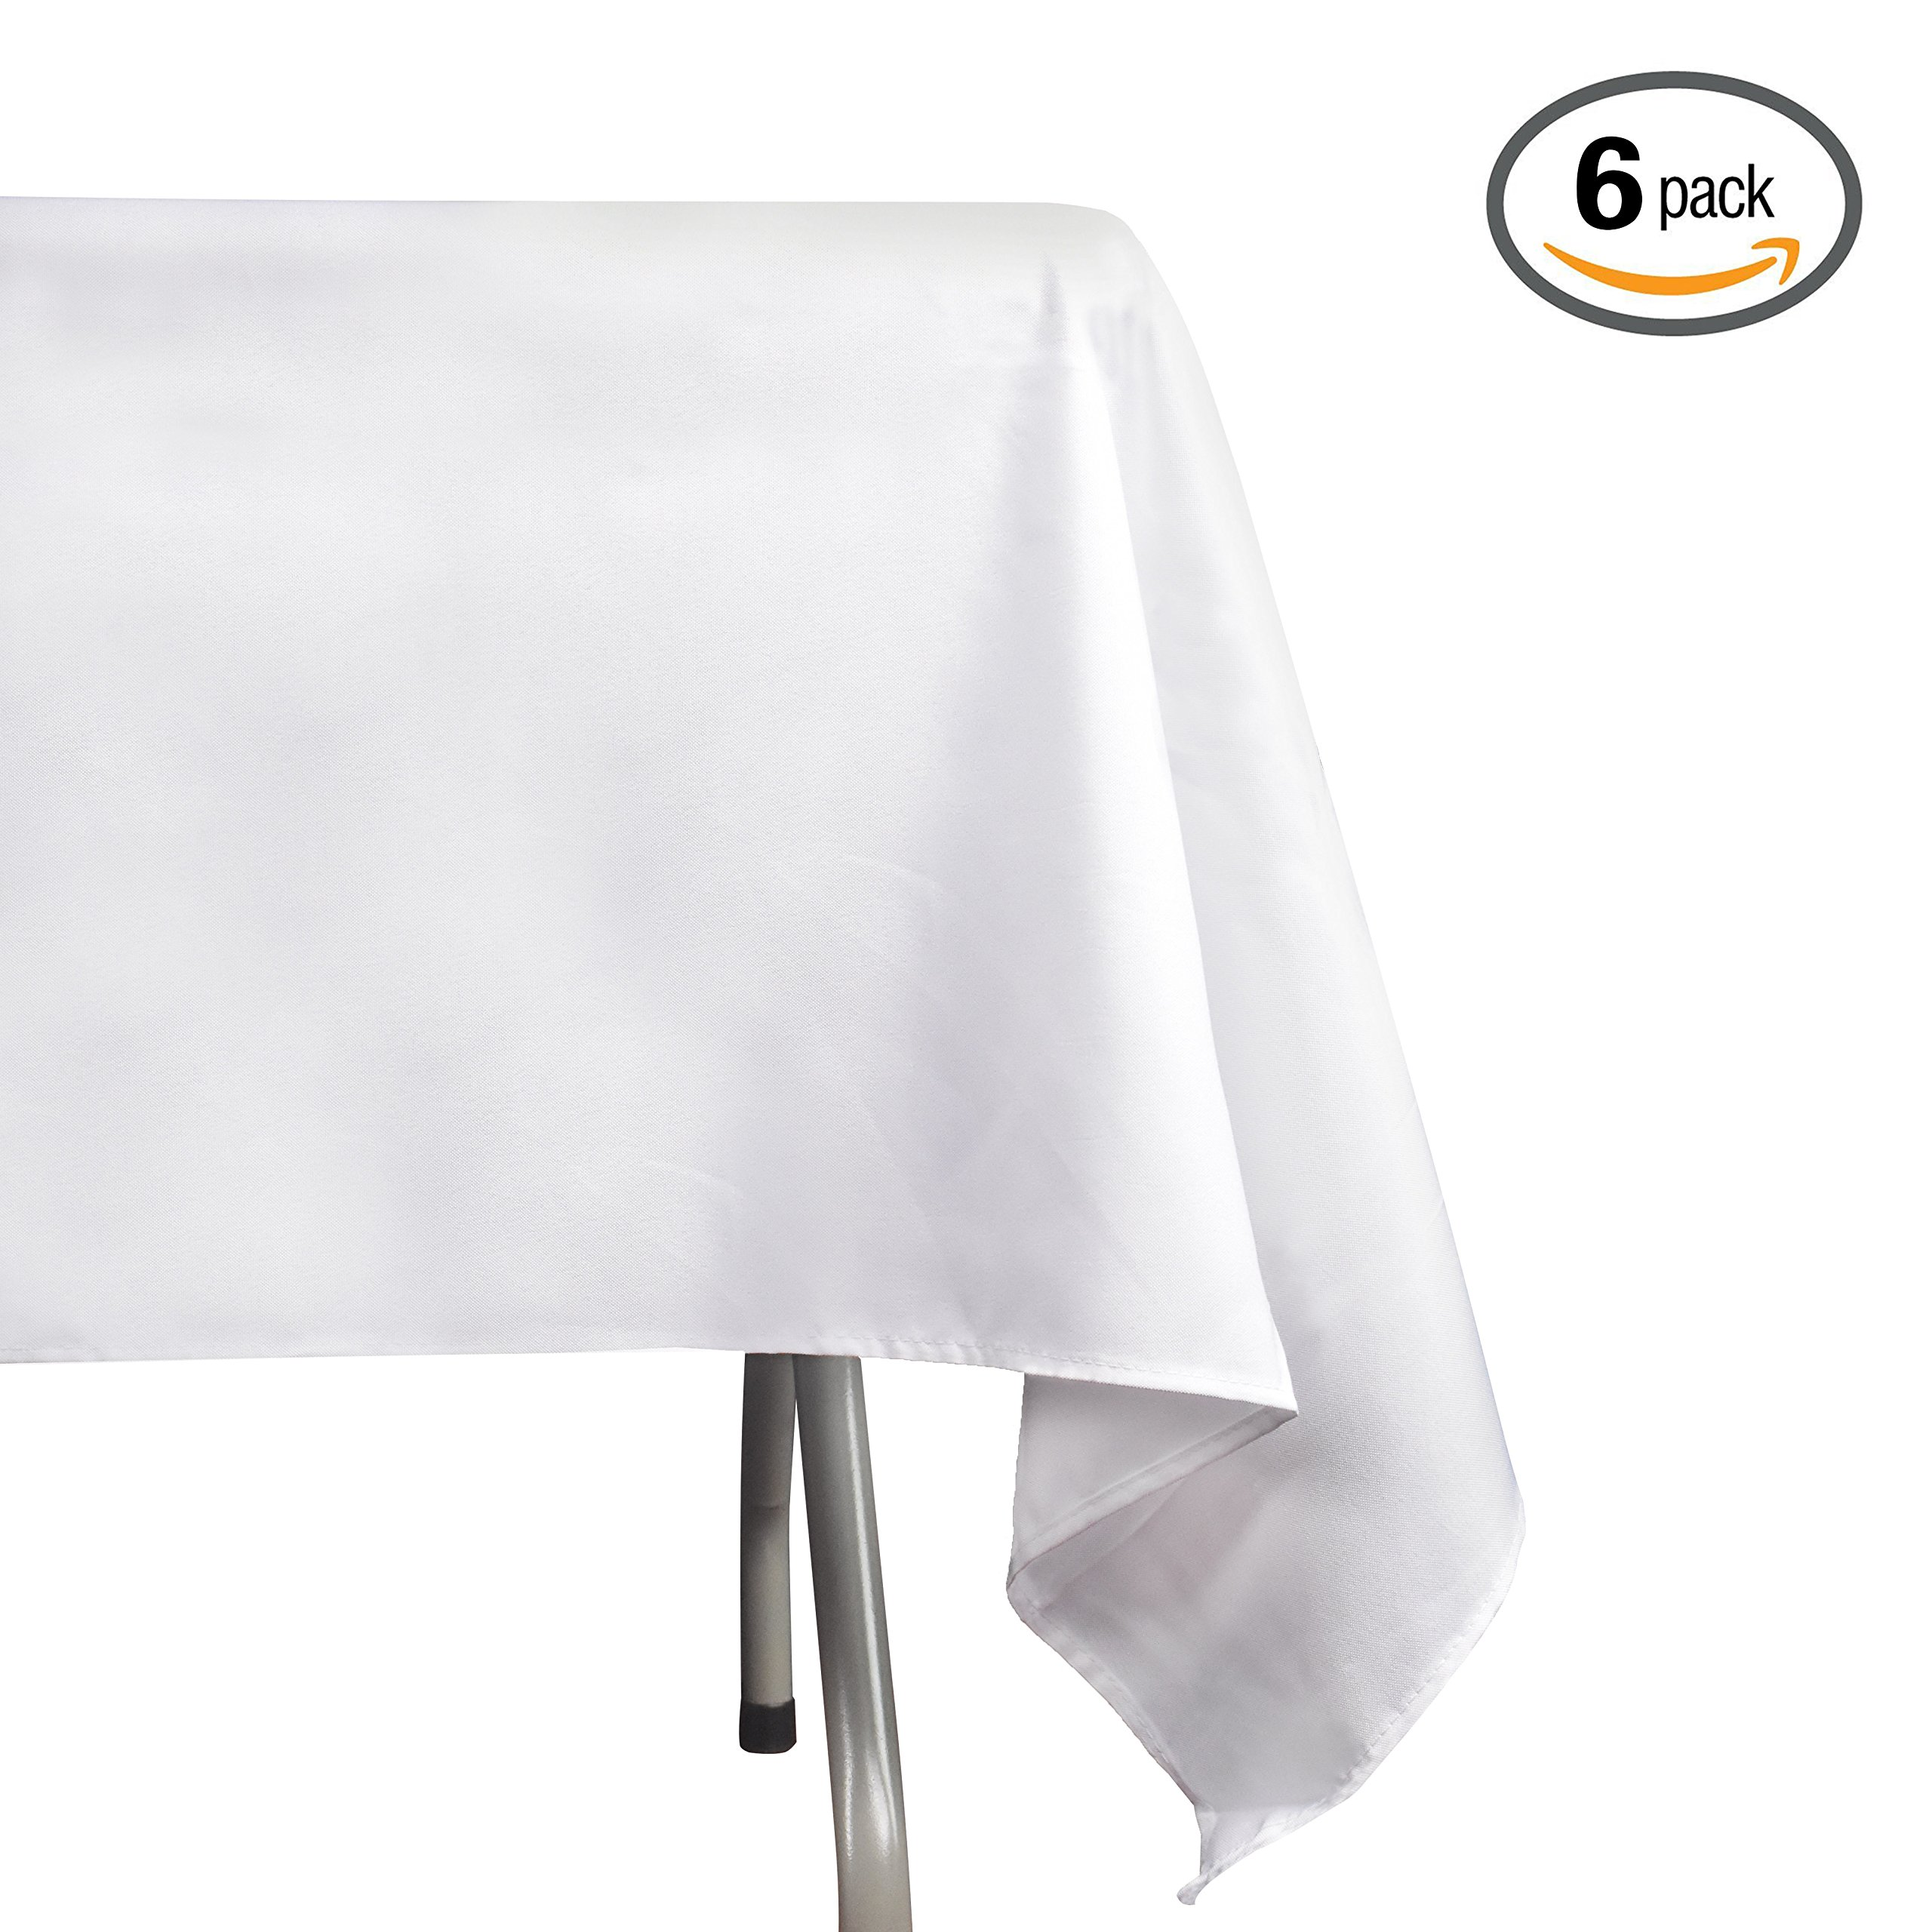 EMART Rectangle Tablecloth, 60 x 102 inch White 100% Polyester Banquet Wedding Party Picnic Rectangular Table Cloths (6 Pack)